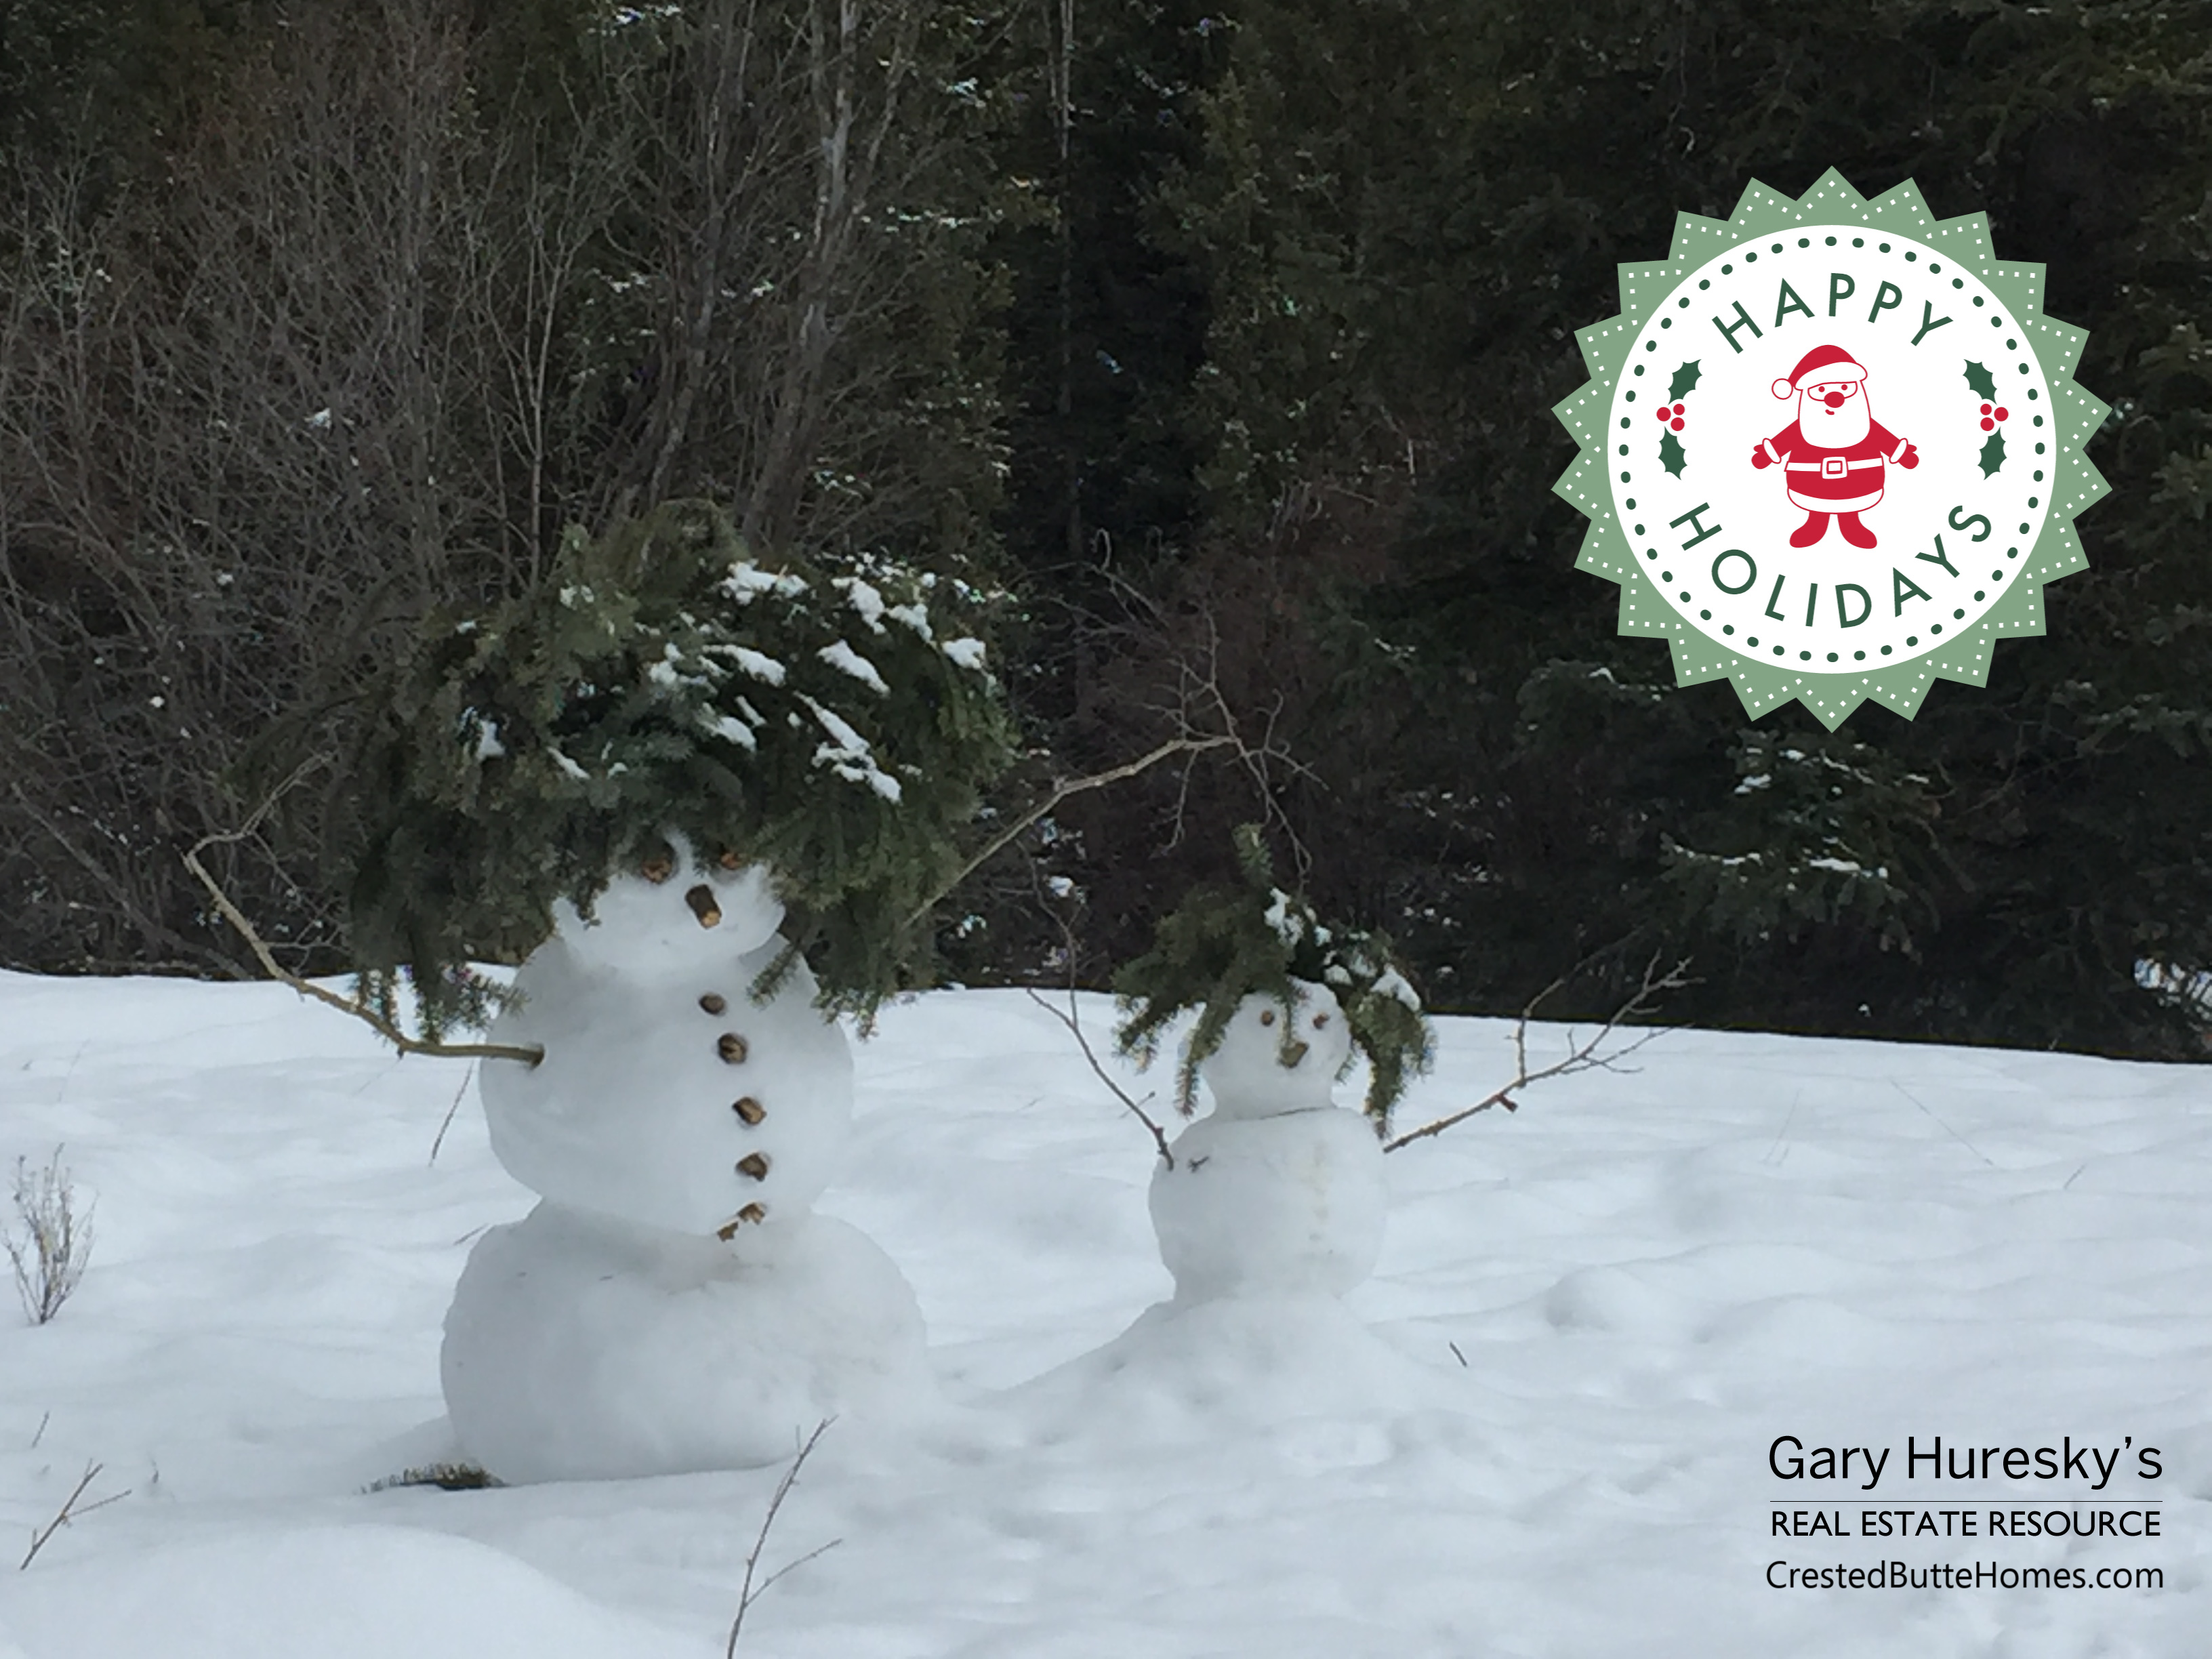 Crested Butte Snowman Happy Holidays